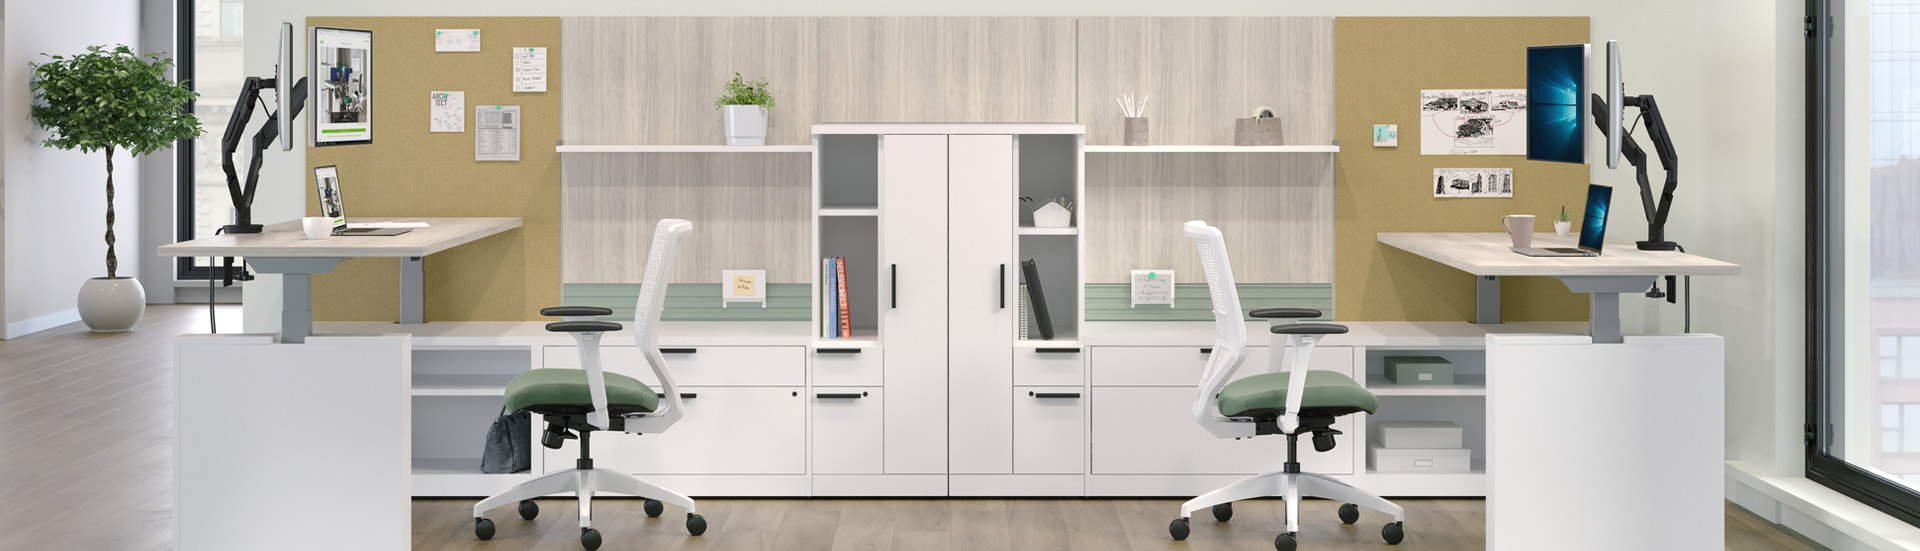 office furniture & office design center